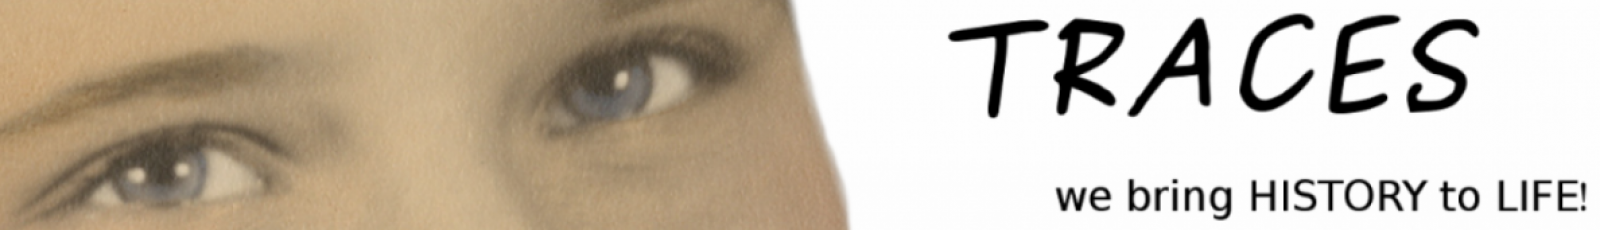 cropped-cropped-eyes1-e1450269121458.png